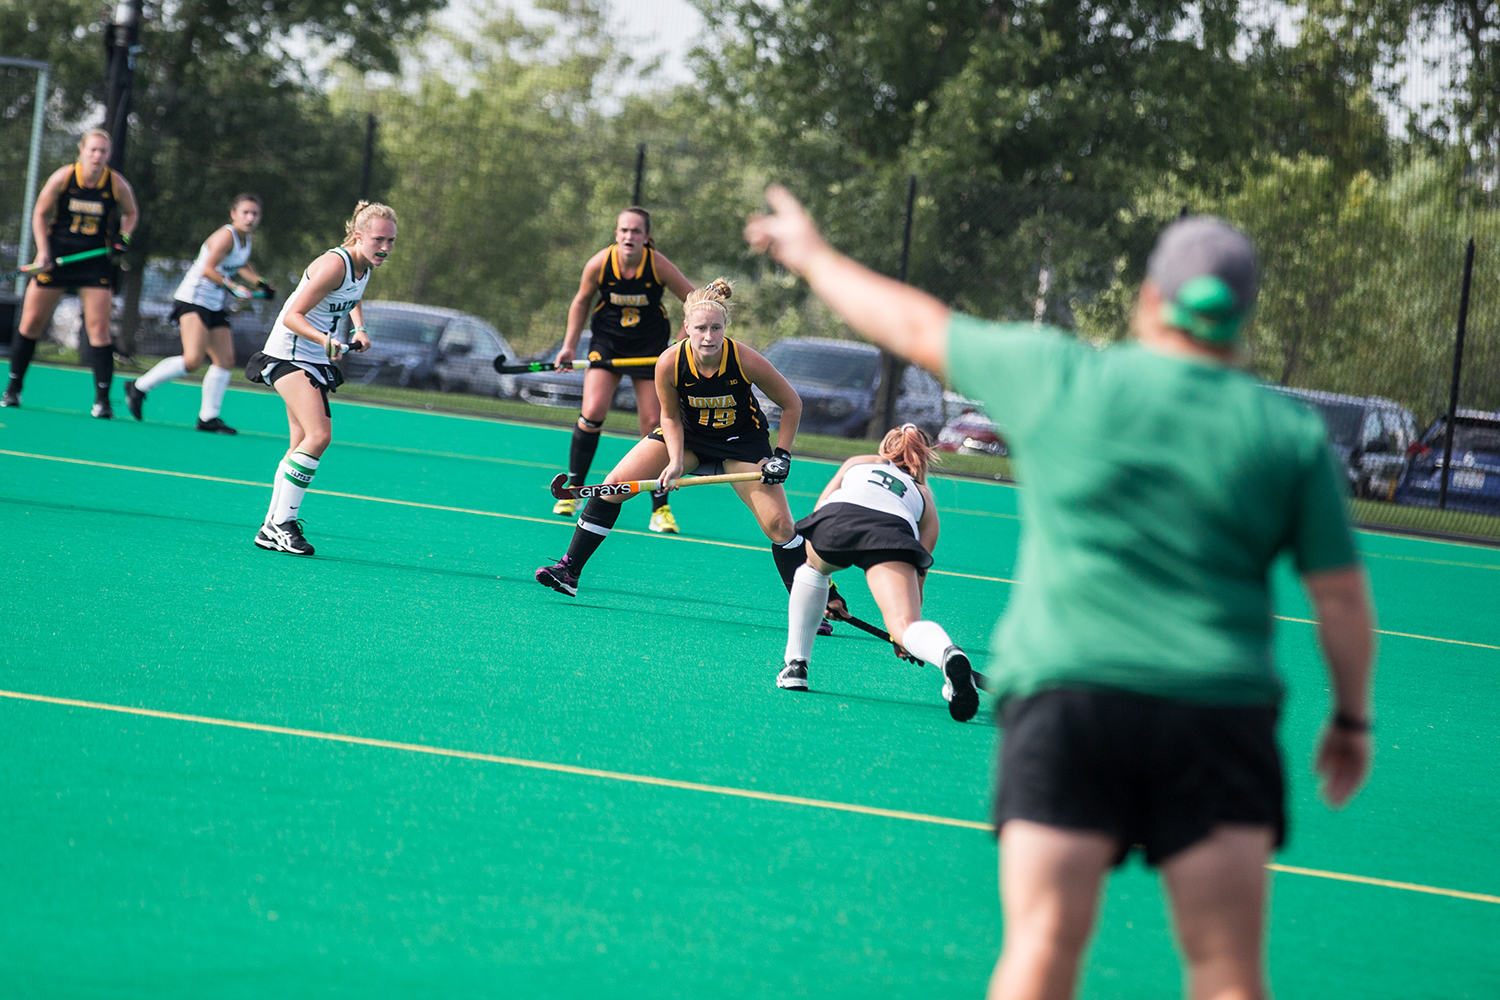 Iowa%27s+Ryley+Miller+plays+defense+during+a+field+hockey+match+between+Iowa+and+Dartmouth+College+at+Grant+Field+on+Friday%2C+August+31%2C+2018.+The+Hawkeyes+shut+out+the+Big+Green%2C+6-0.